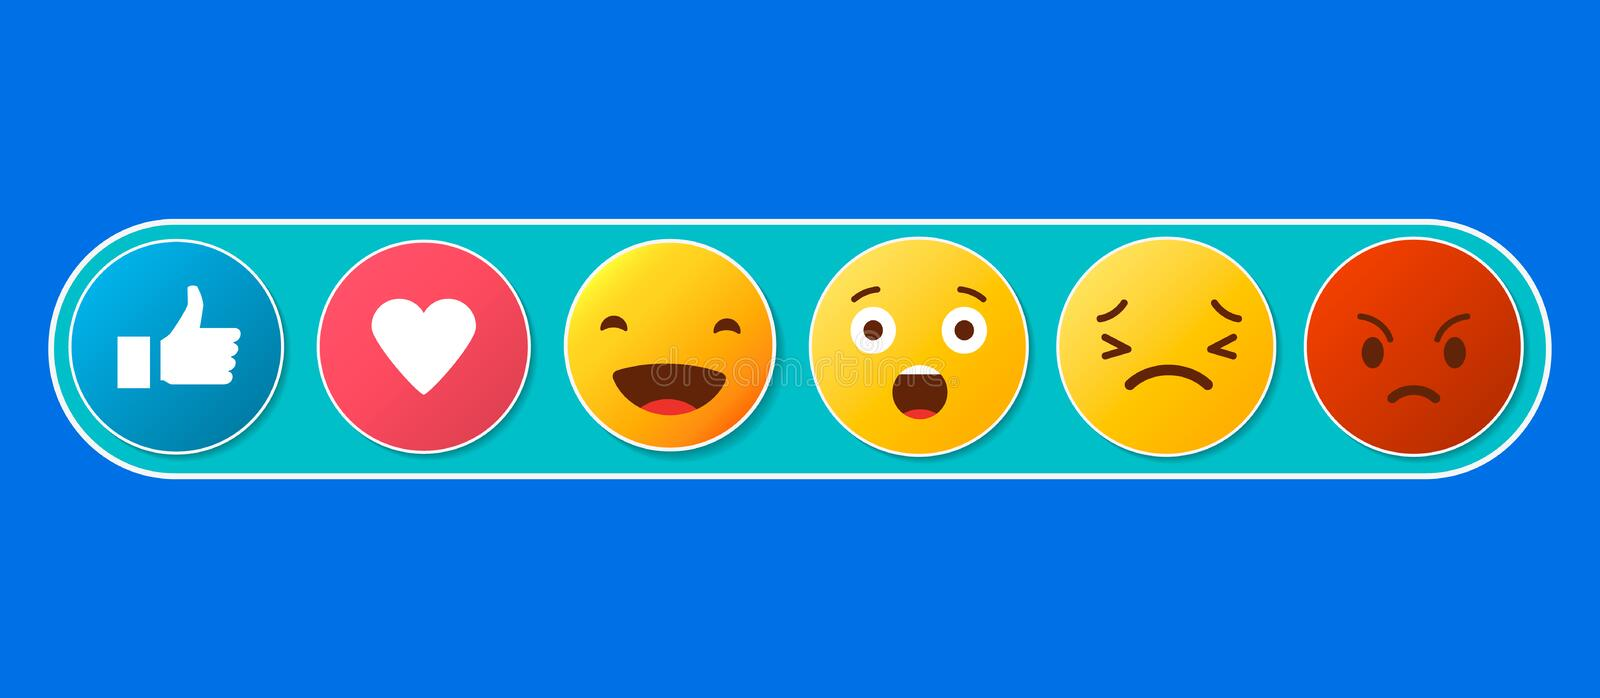 Abstract funny flat style emoji emoticon reactions color icon set. Social smile expression collection royalty free illustration